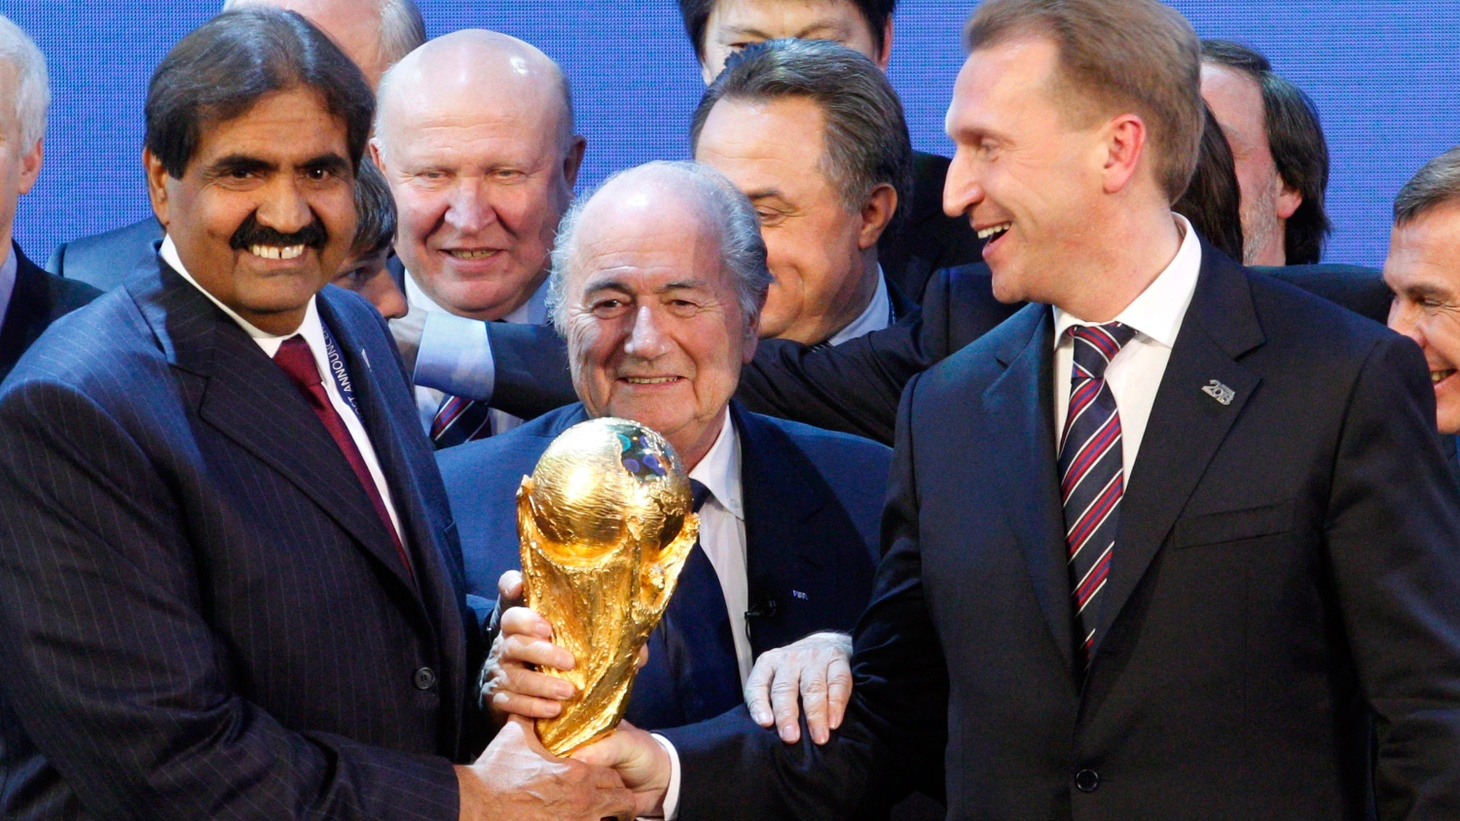 """The President of FIFA says this week's corruption charges bring """"shame and humiliation"""" to football. But he's not stepping aside despite calls for a change in leadership. With such deep roots in culture and with billions at stake, can the world's most beautiful game be cleaned up? We look at how the world is reacting to soccer's corruption scandal."""